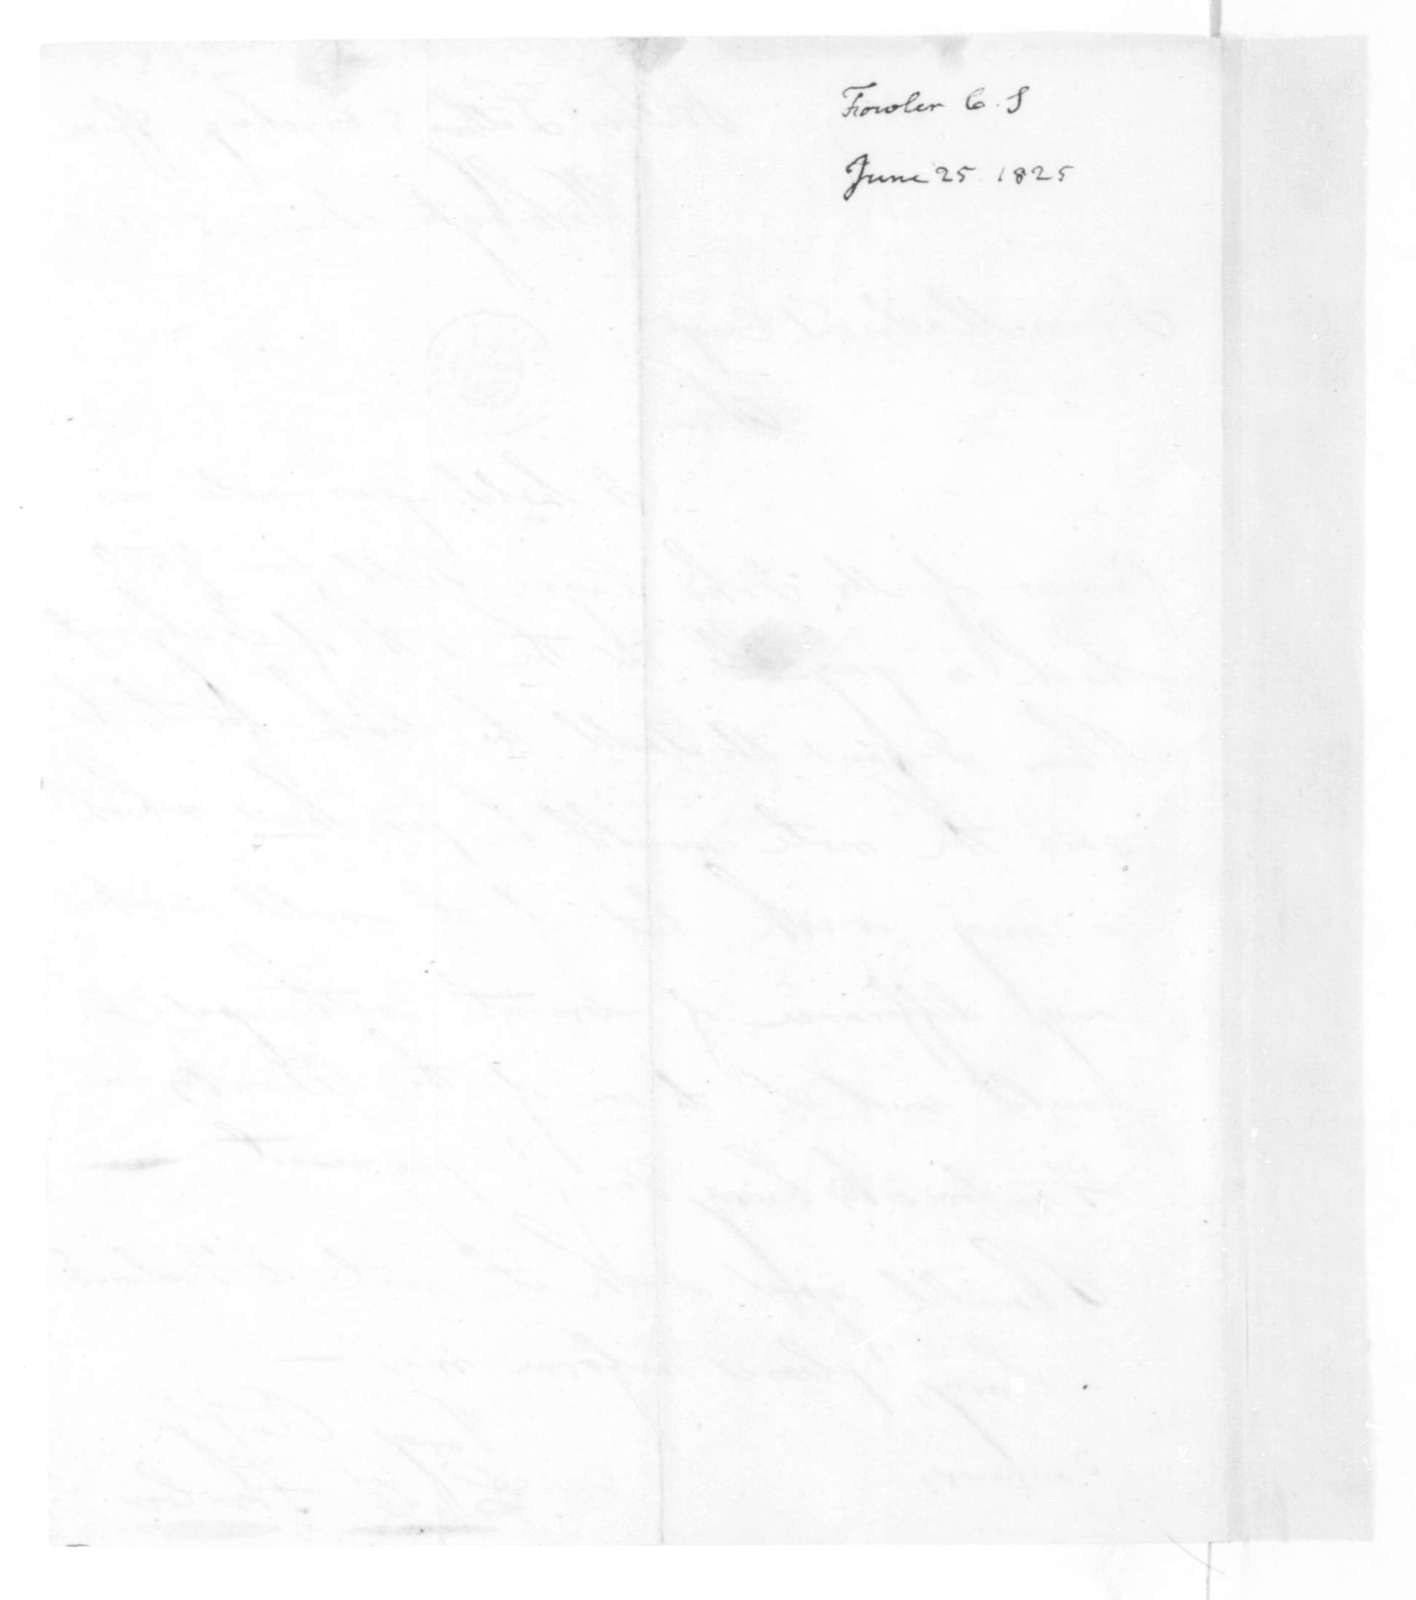 C. S. Fowler to James Madison, June 25, 1825.